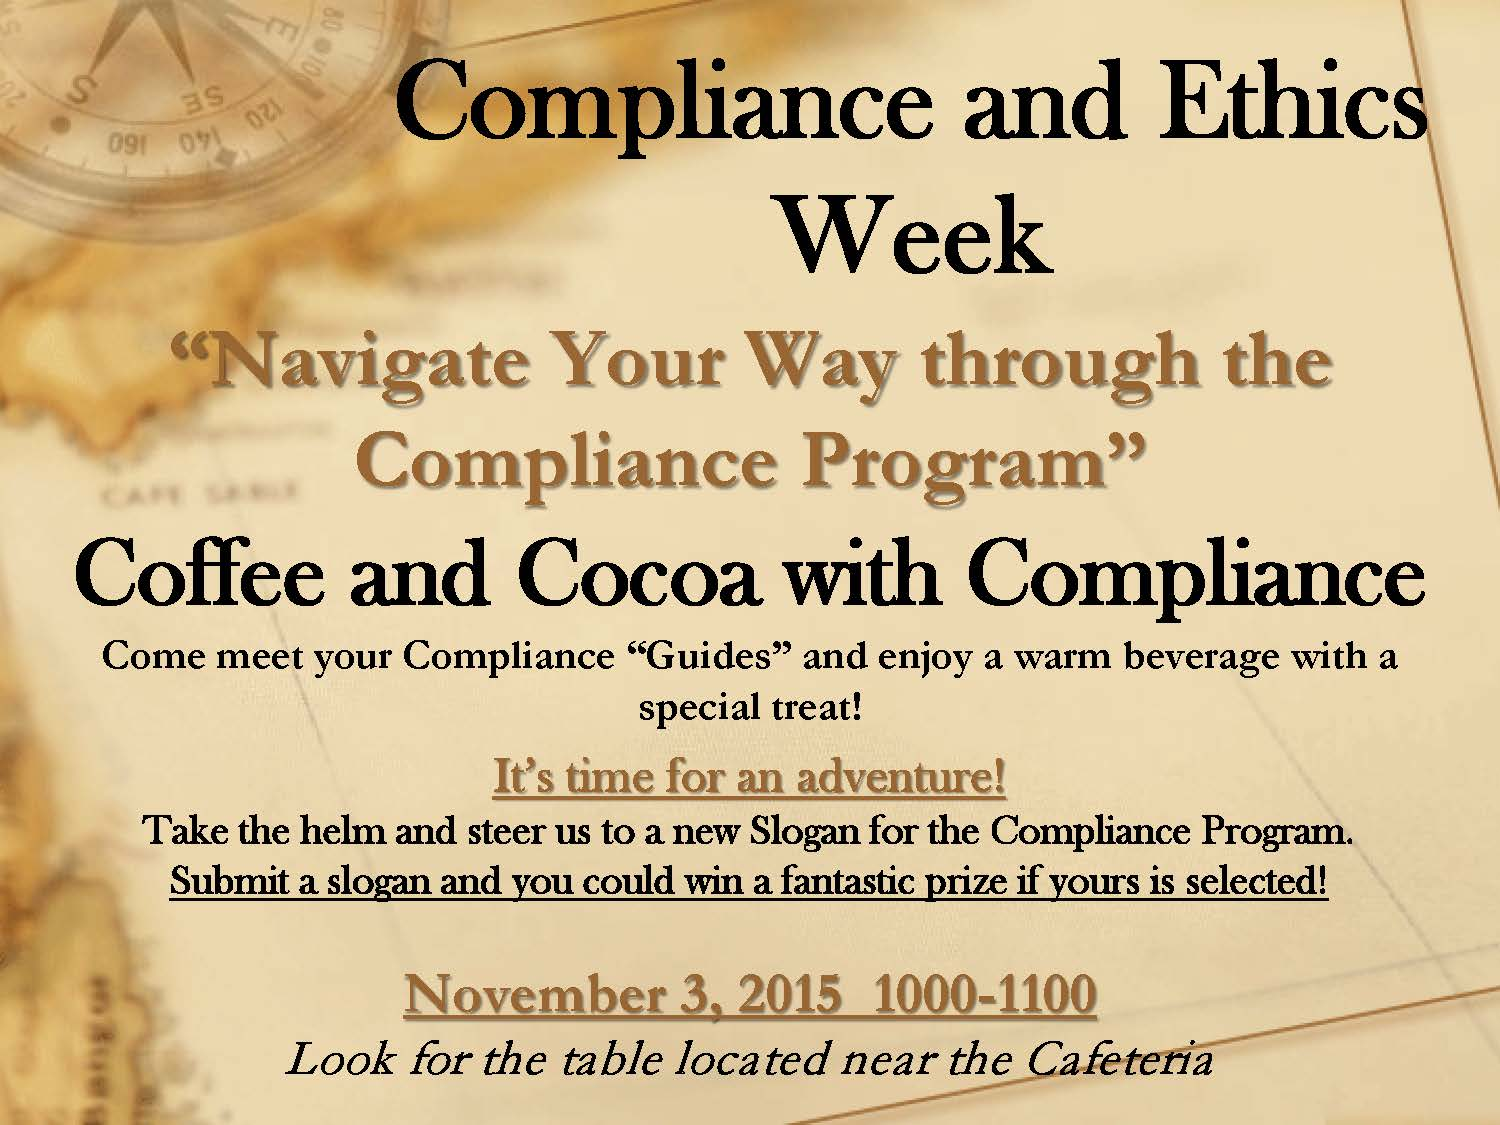 Celebrate corporate compliance ethics week - Ethics and compliance officer association ...